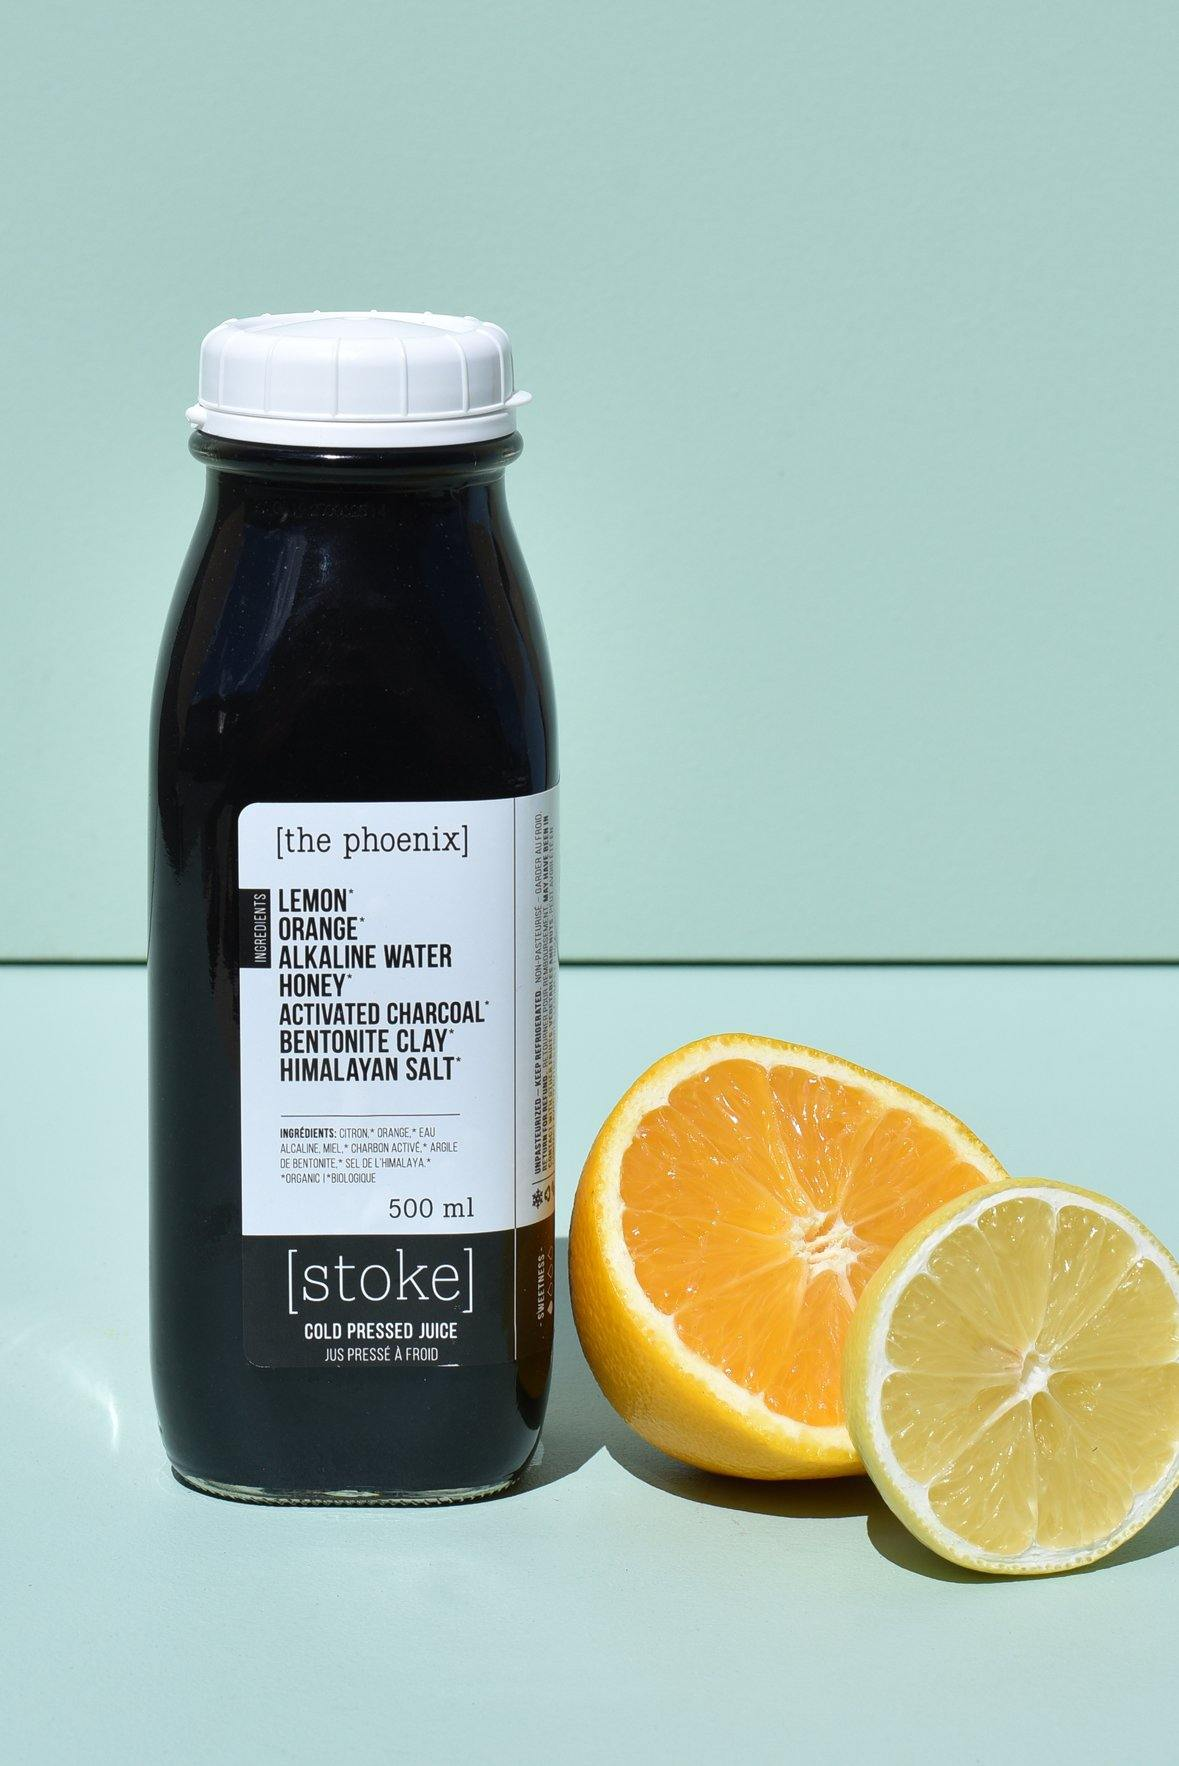 [ the phoenix ] cold pressed juice with activated charcoal, honey and bentonite clay